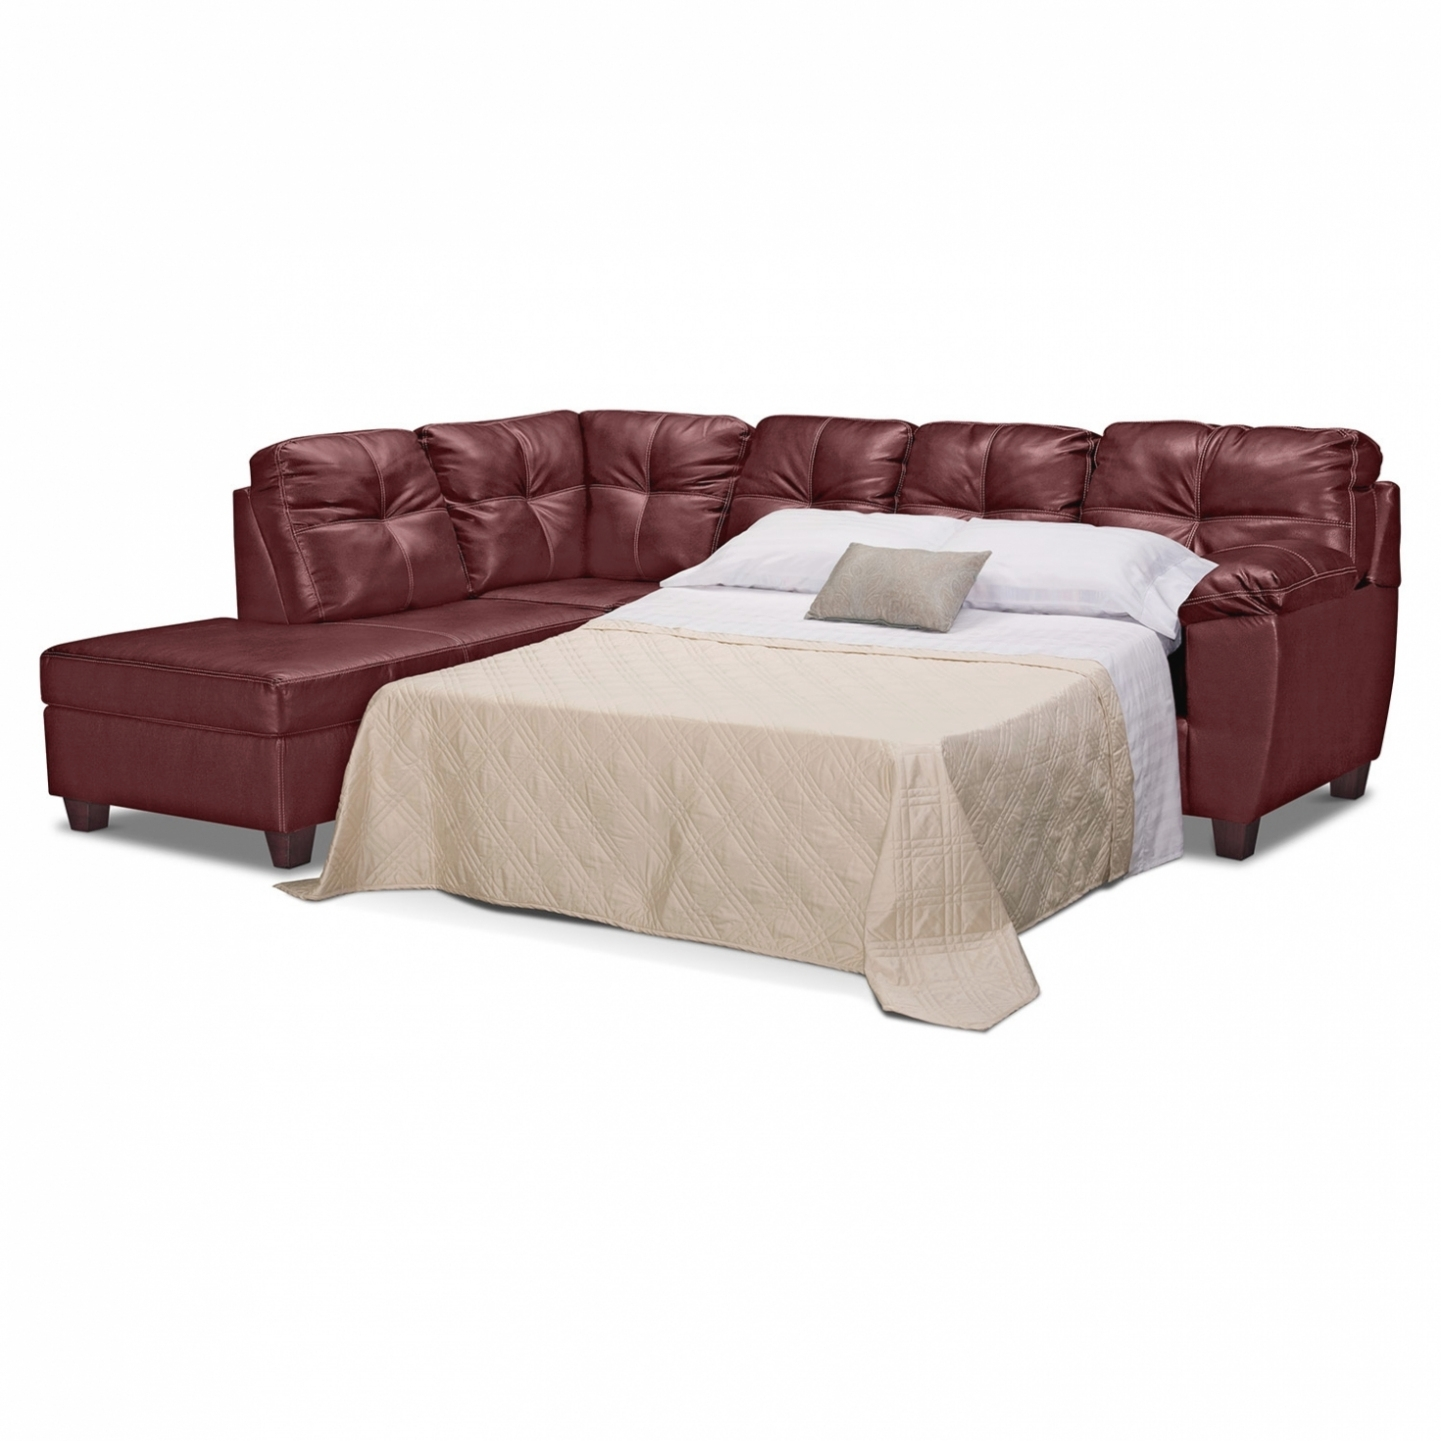 Living Room: Interior Decor: Likeable Leather Sofa Sleepers Full Throughout Aspen 2 Piece Sleeper Sectionals With Laf Chaise (Image 14 of 25)